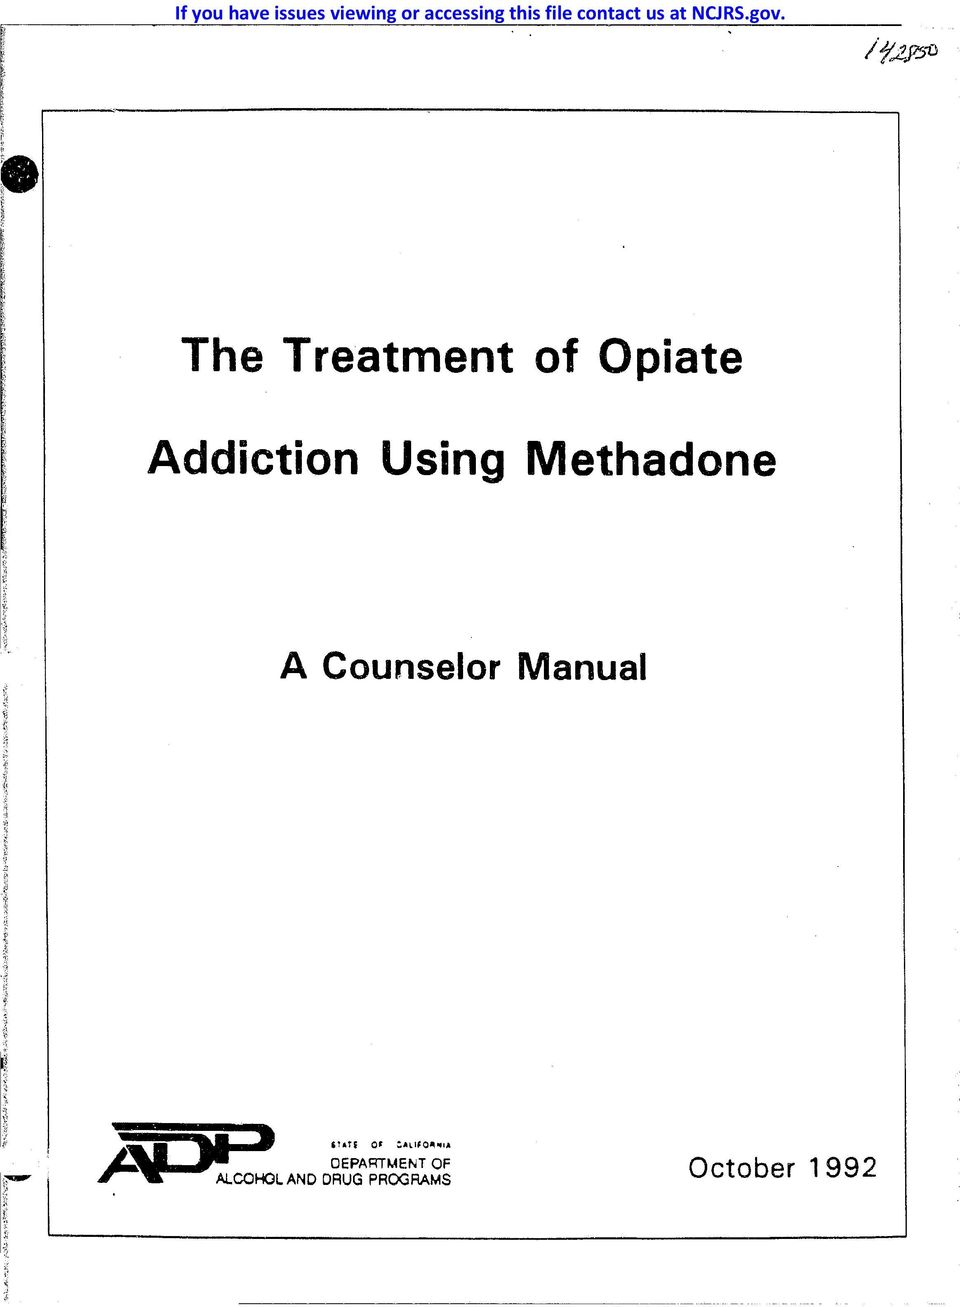 The Treatment of Opiate Addiction Using Methadone A.